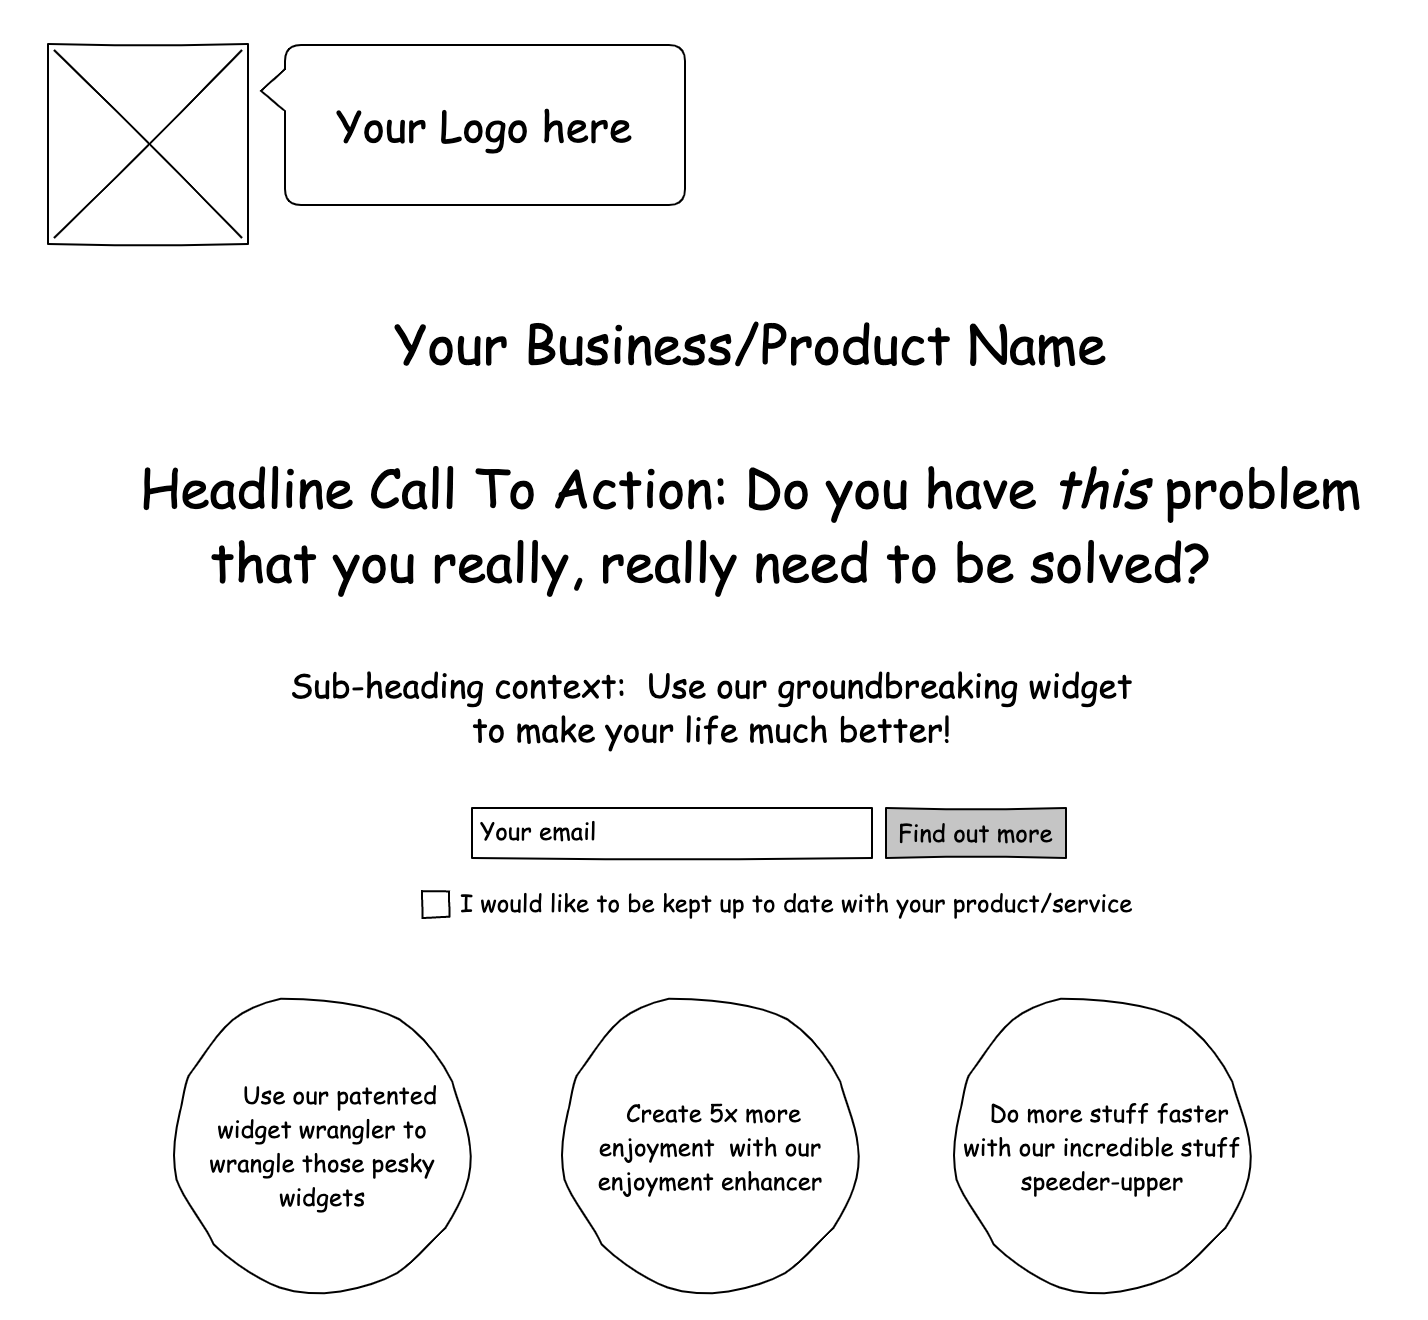 Example of a first-floor landing page